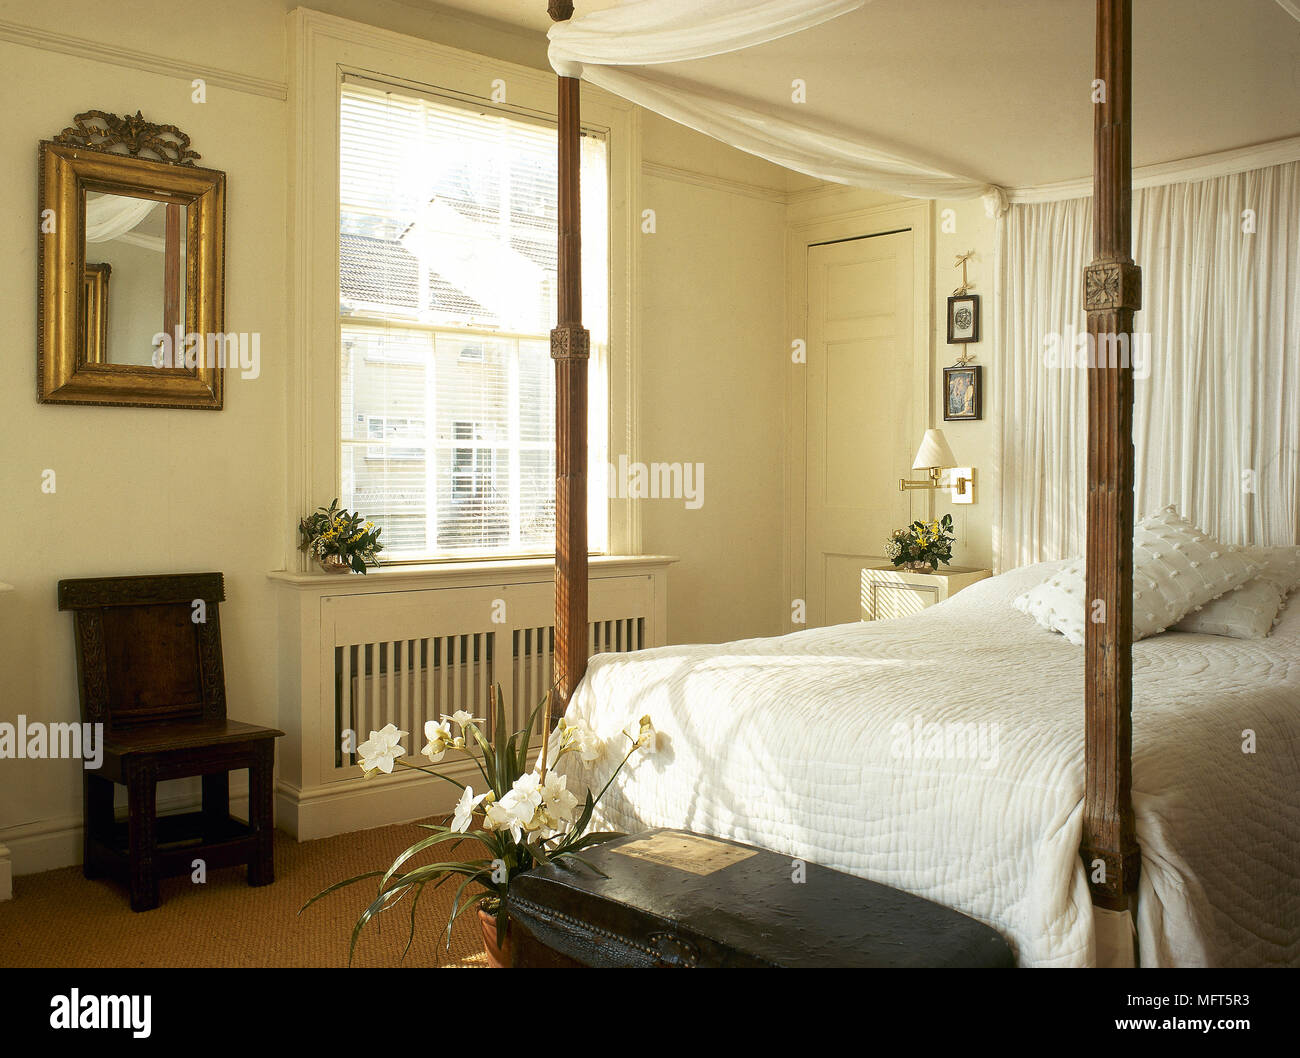 https www alamy com a traditional yellow bedroom with four poster bed fabric canopy image181854935 html